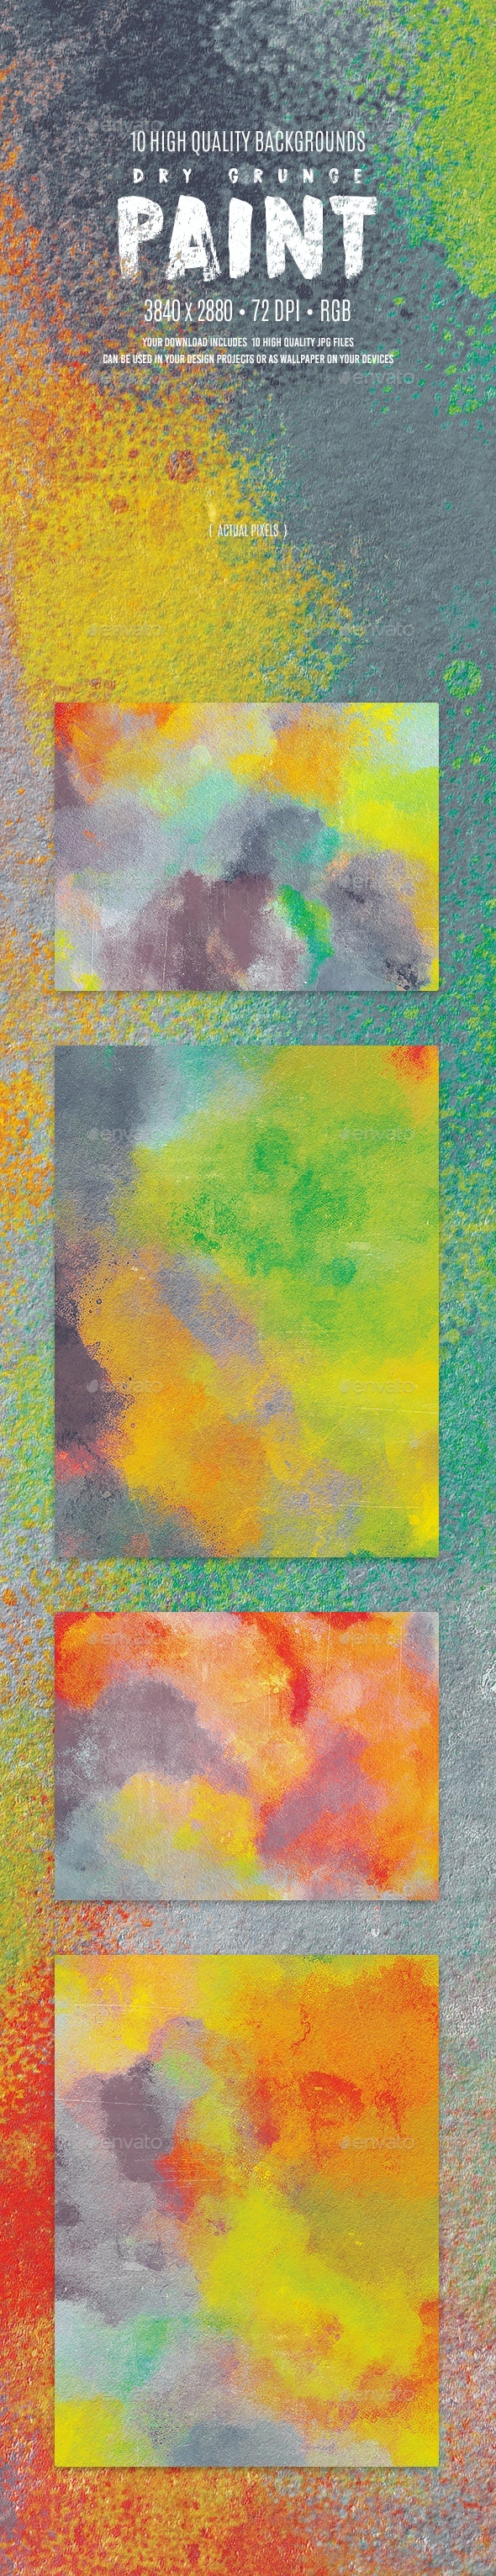 Dry Grunge Paint Backgrounds - Abstract Backgrounds